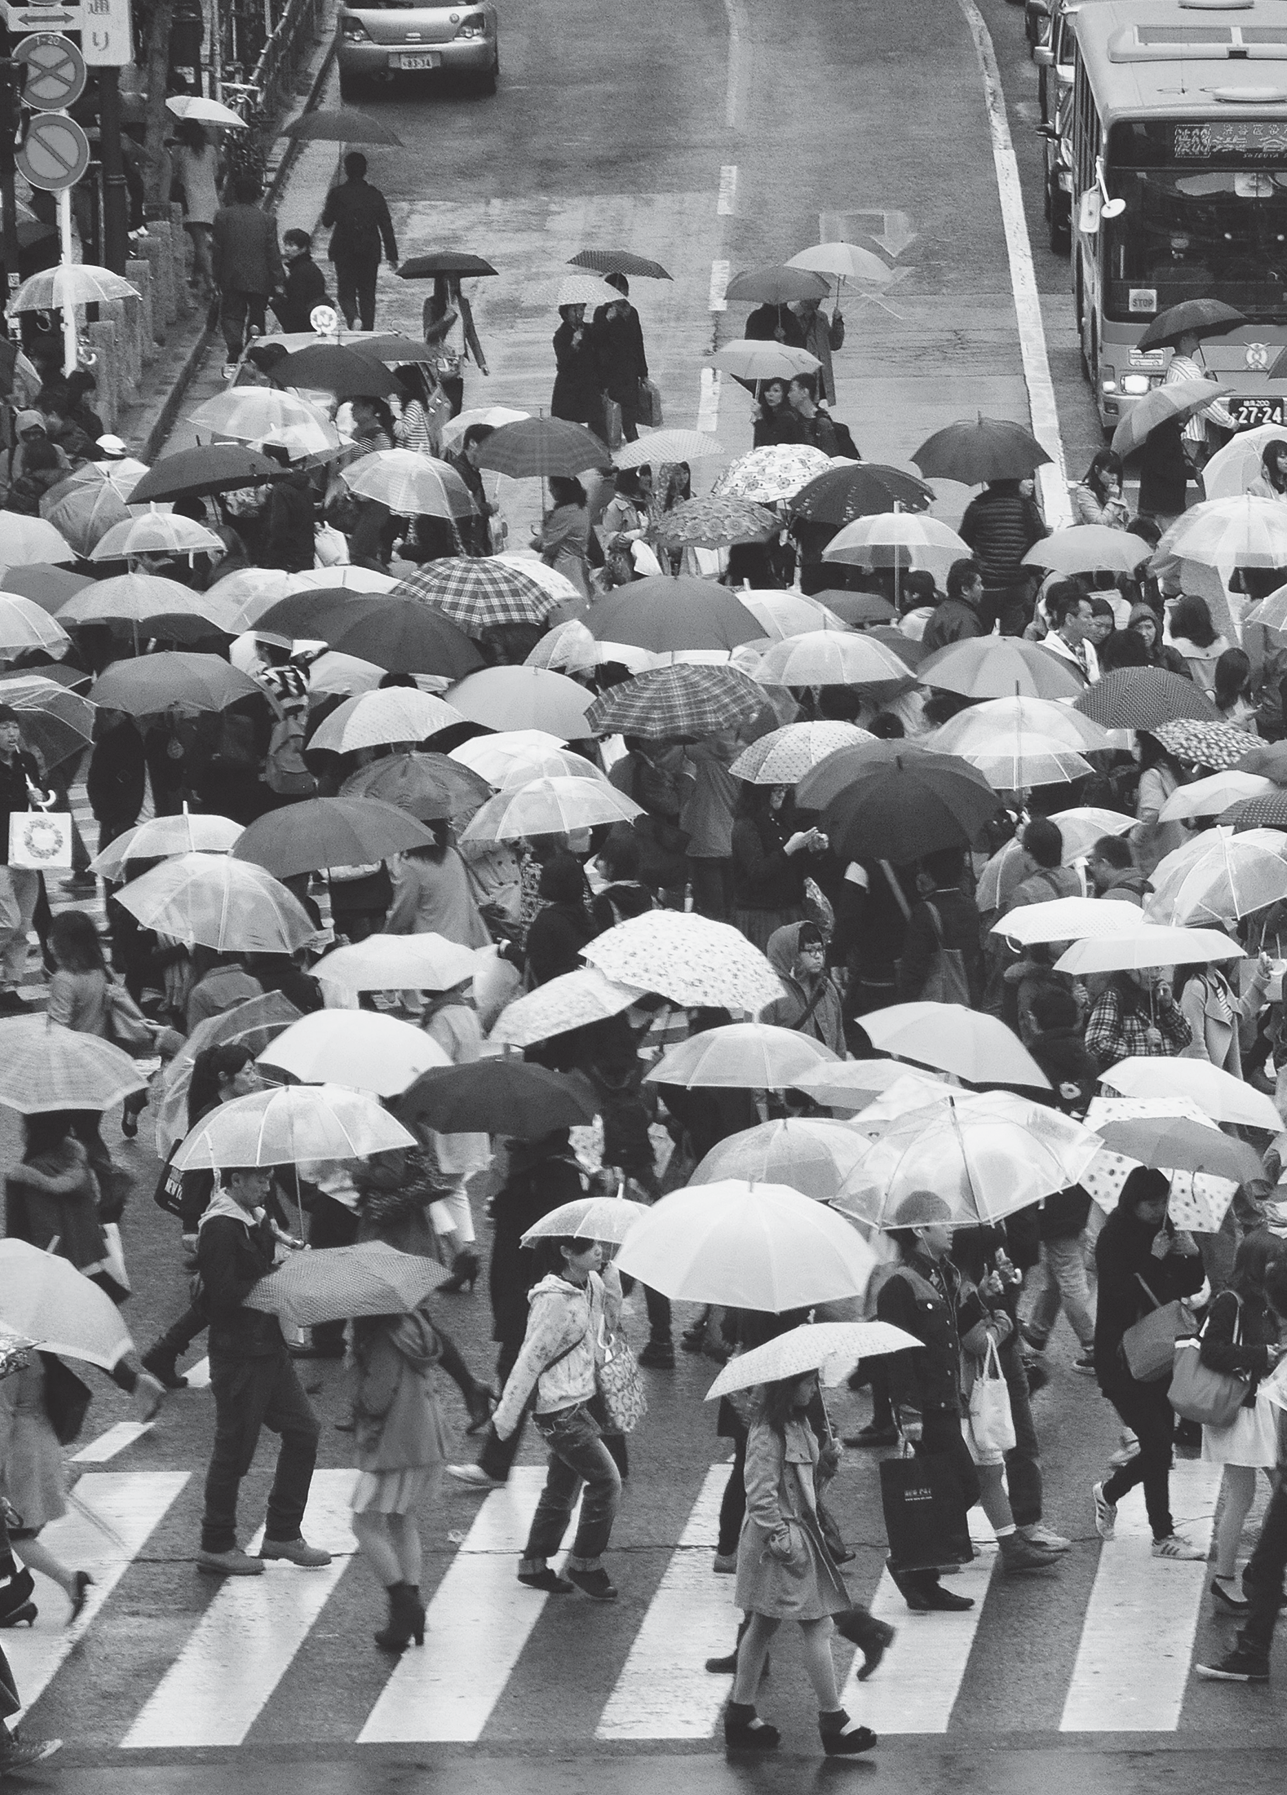 people crossing a street with umbrellas